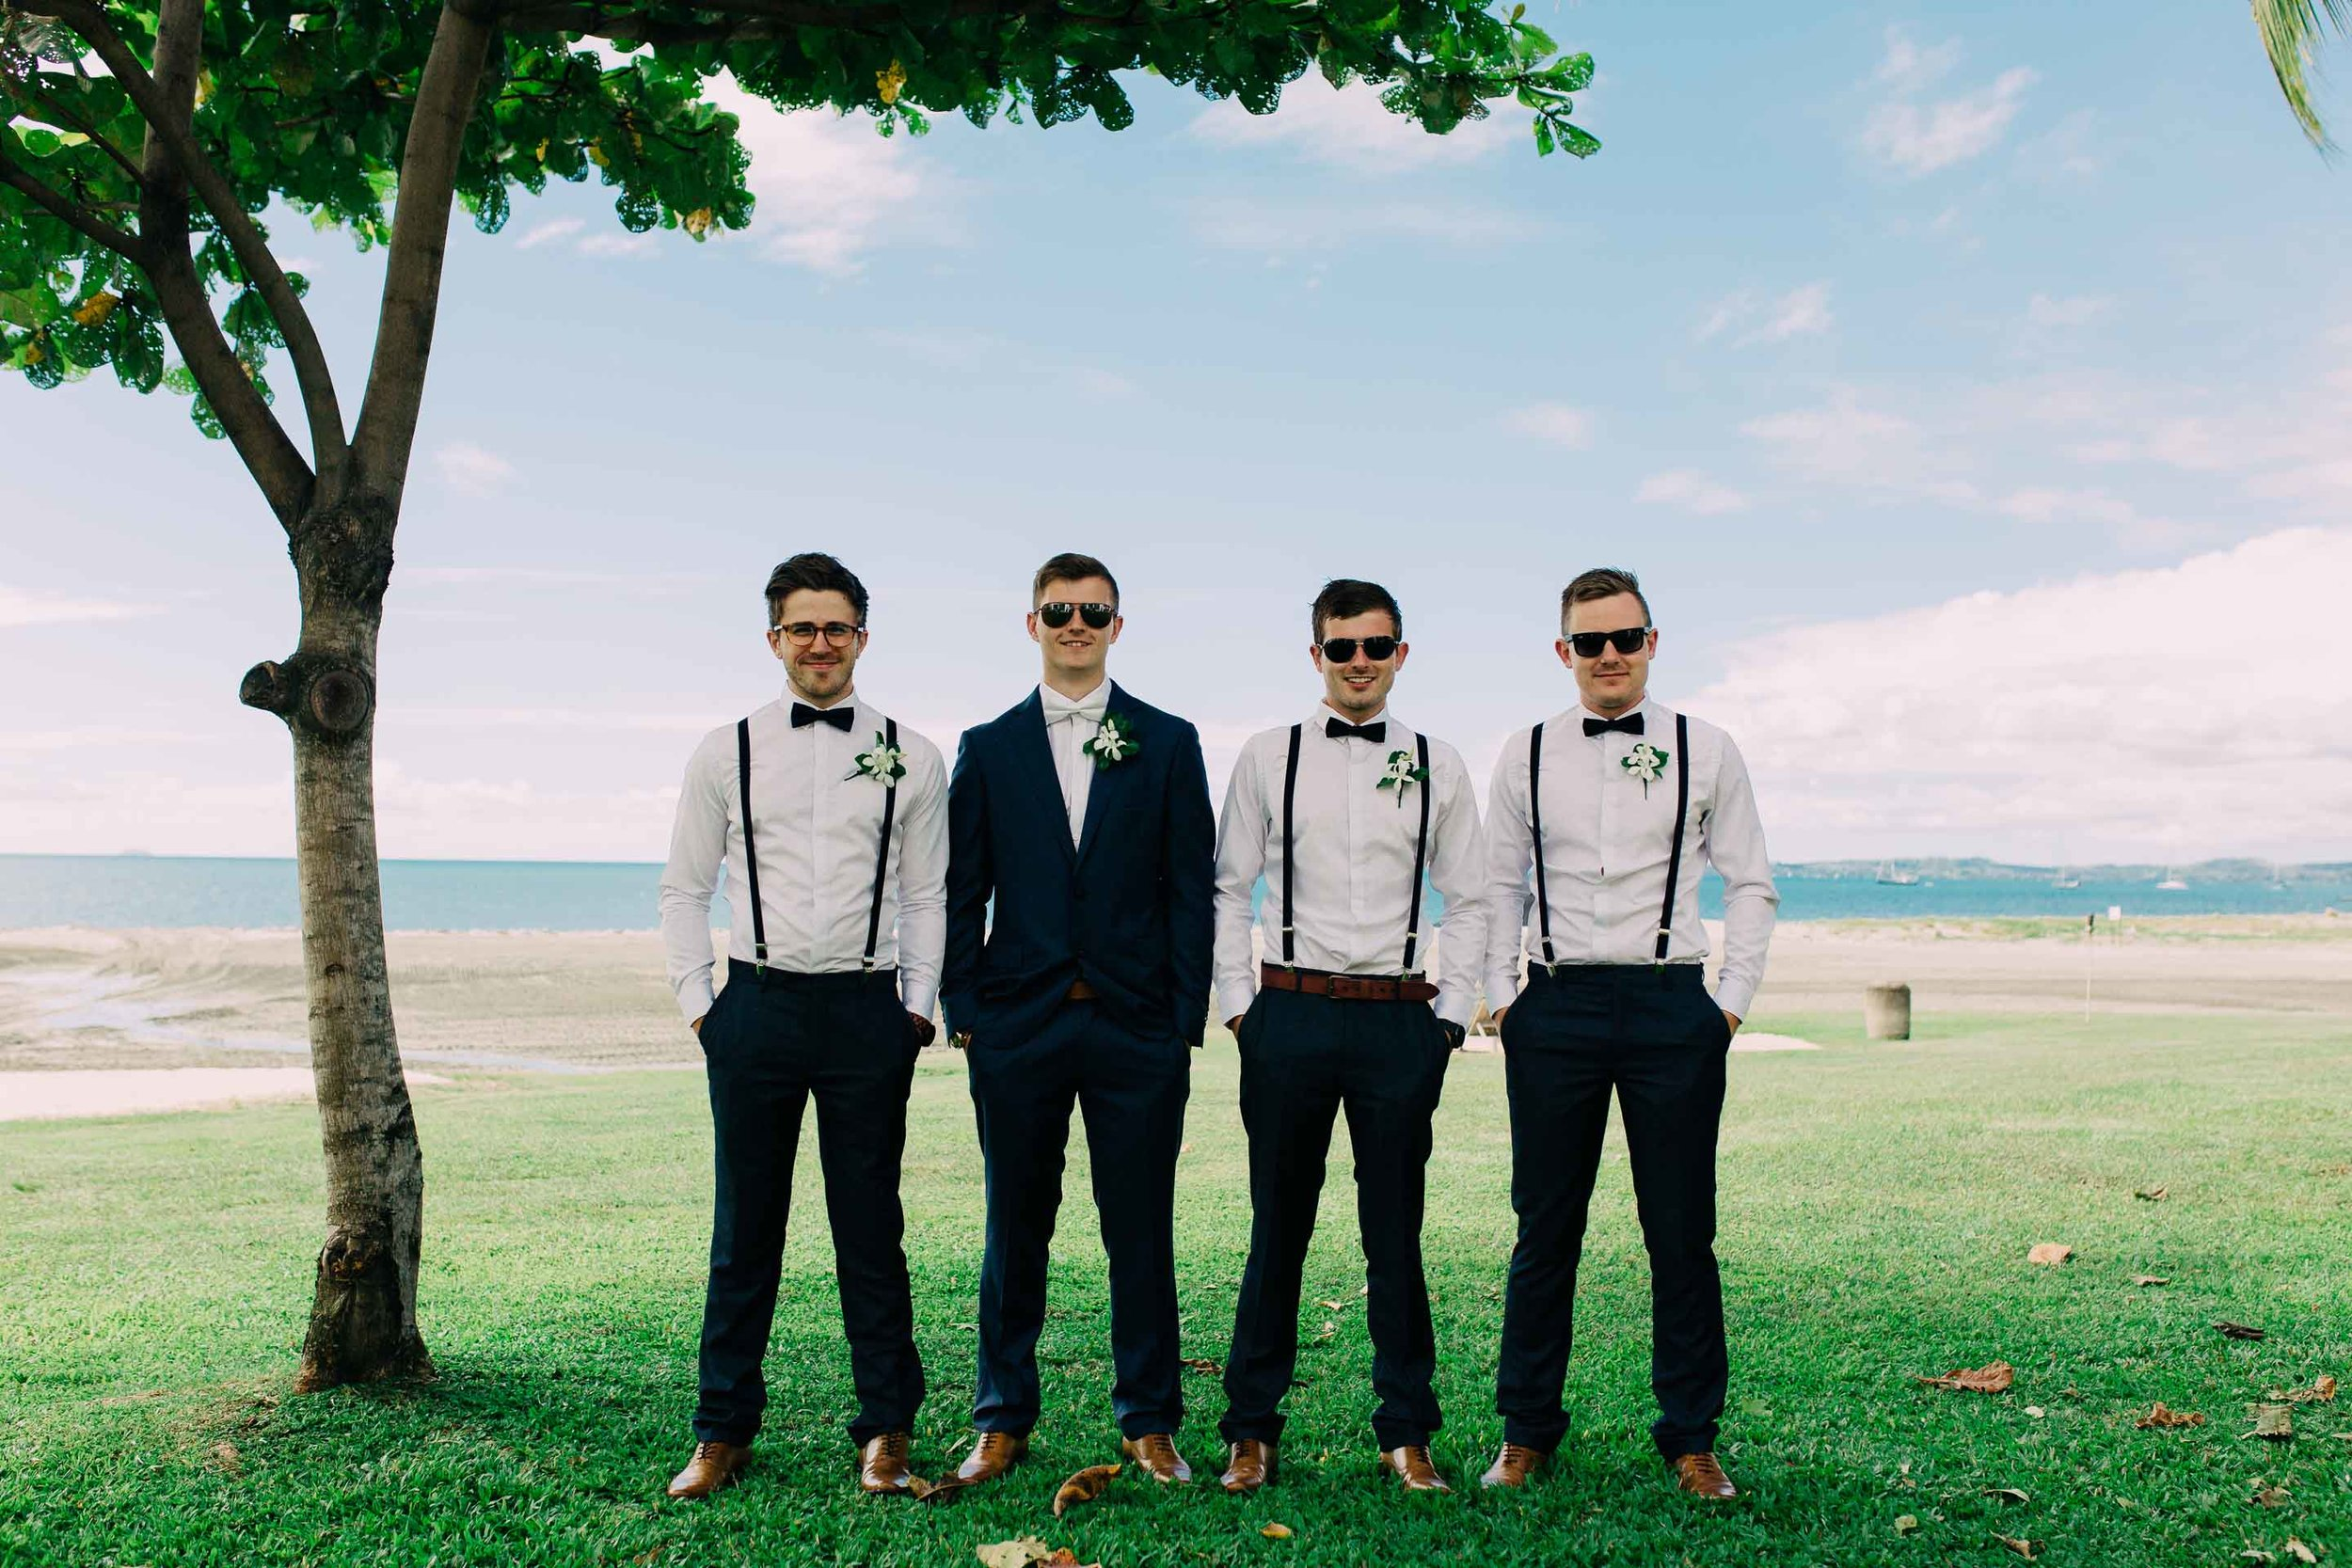 Stylish Groomsmen with Suspenders all ready for the Beach Ceremony at the Hilton Fiji.